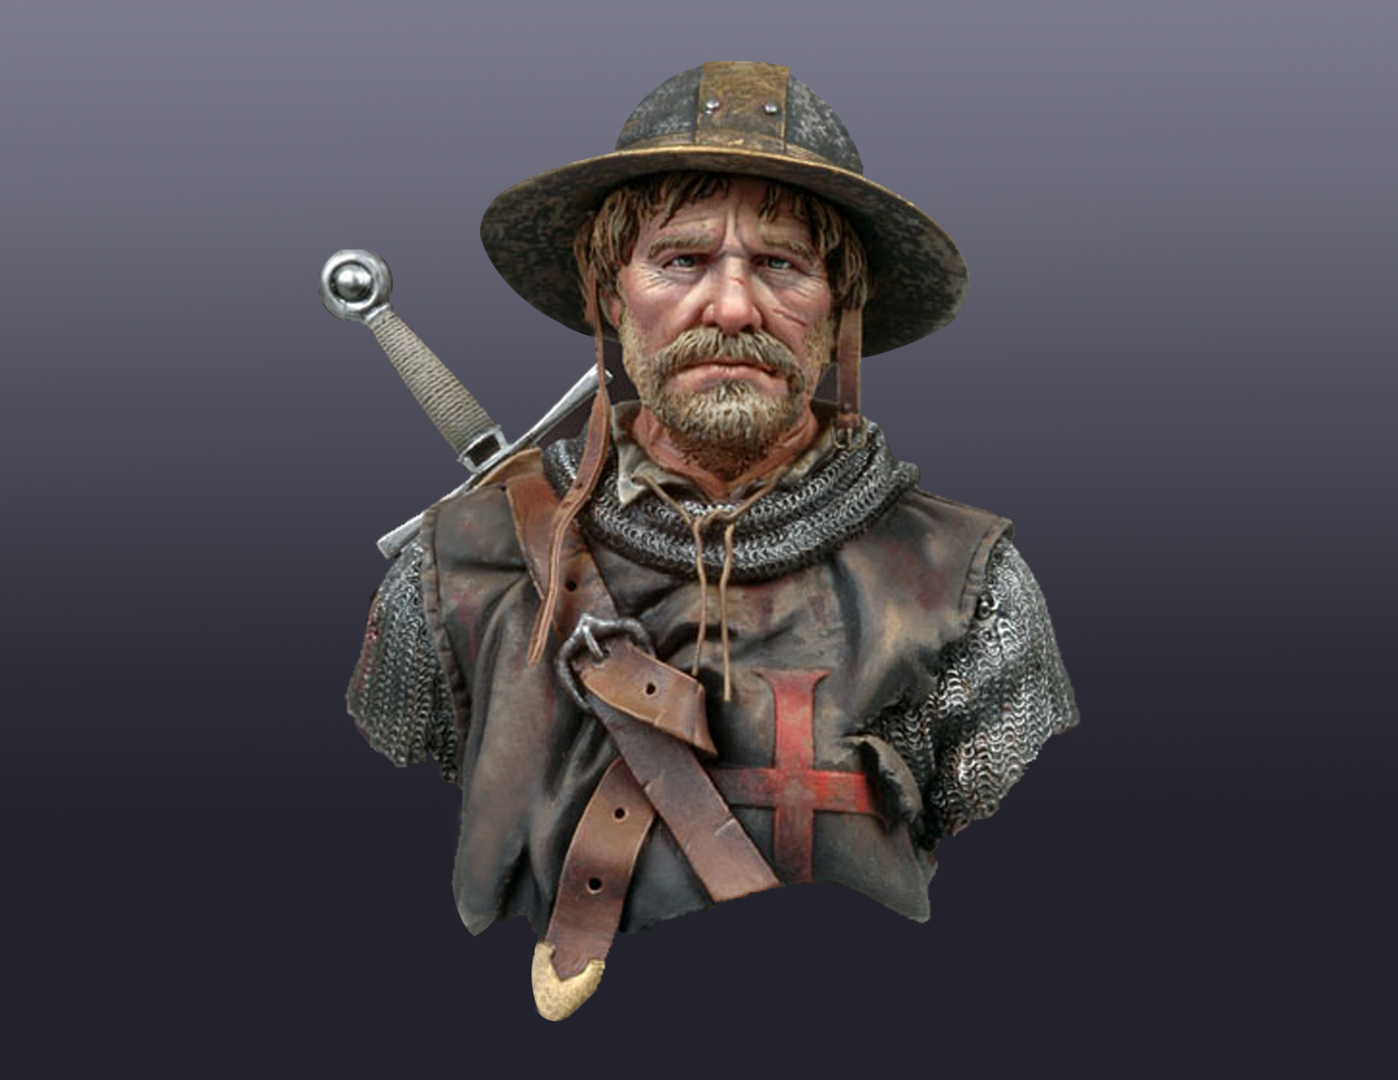 Middle Ages Warrior_ZBRUSH-1_00000.png